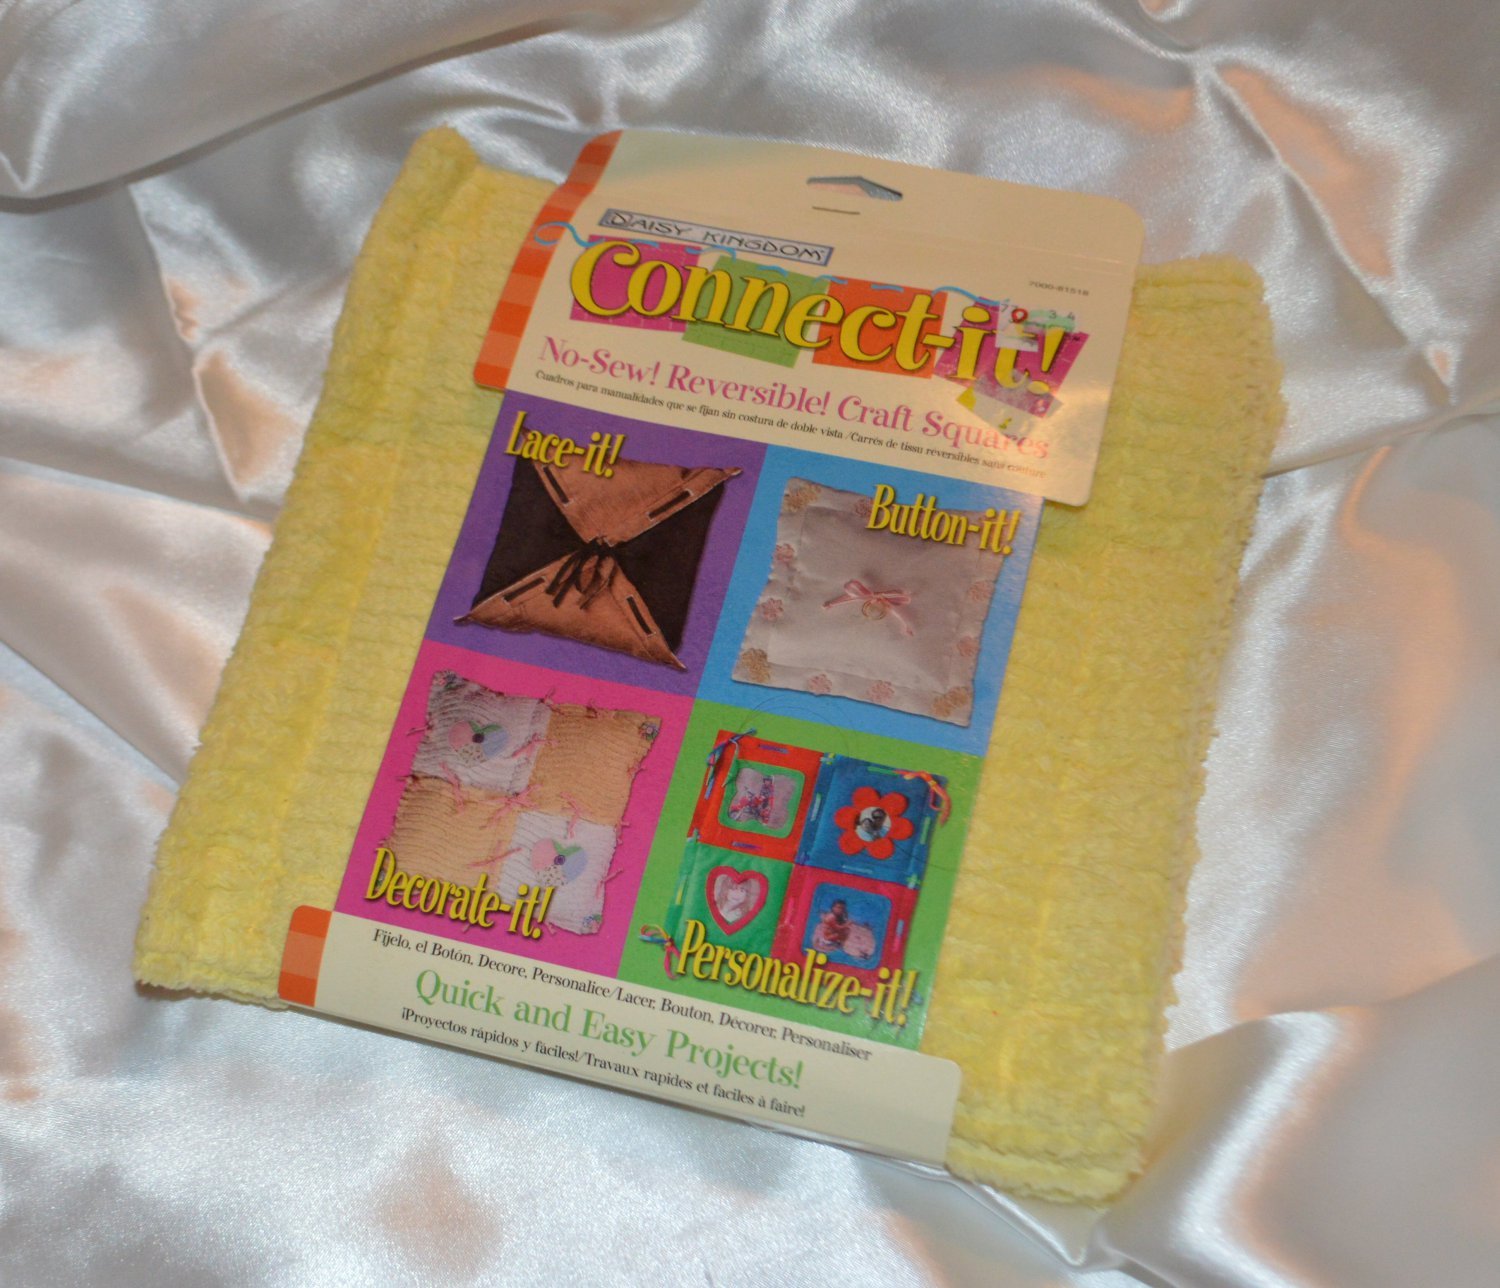 Daisy Kingdom Connect-it No-Sew Reversible Craft Squares Yellow Terry Cloth Butt